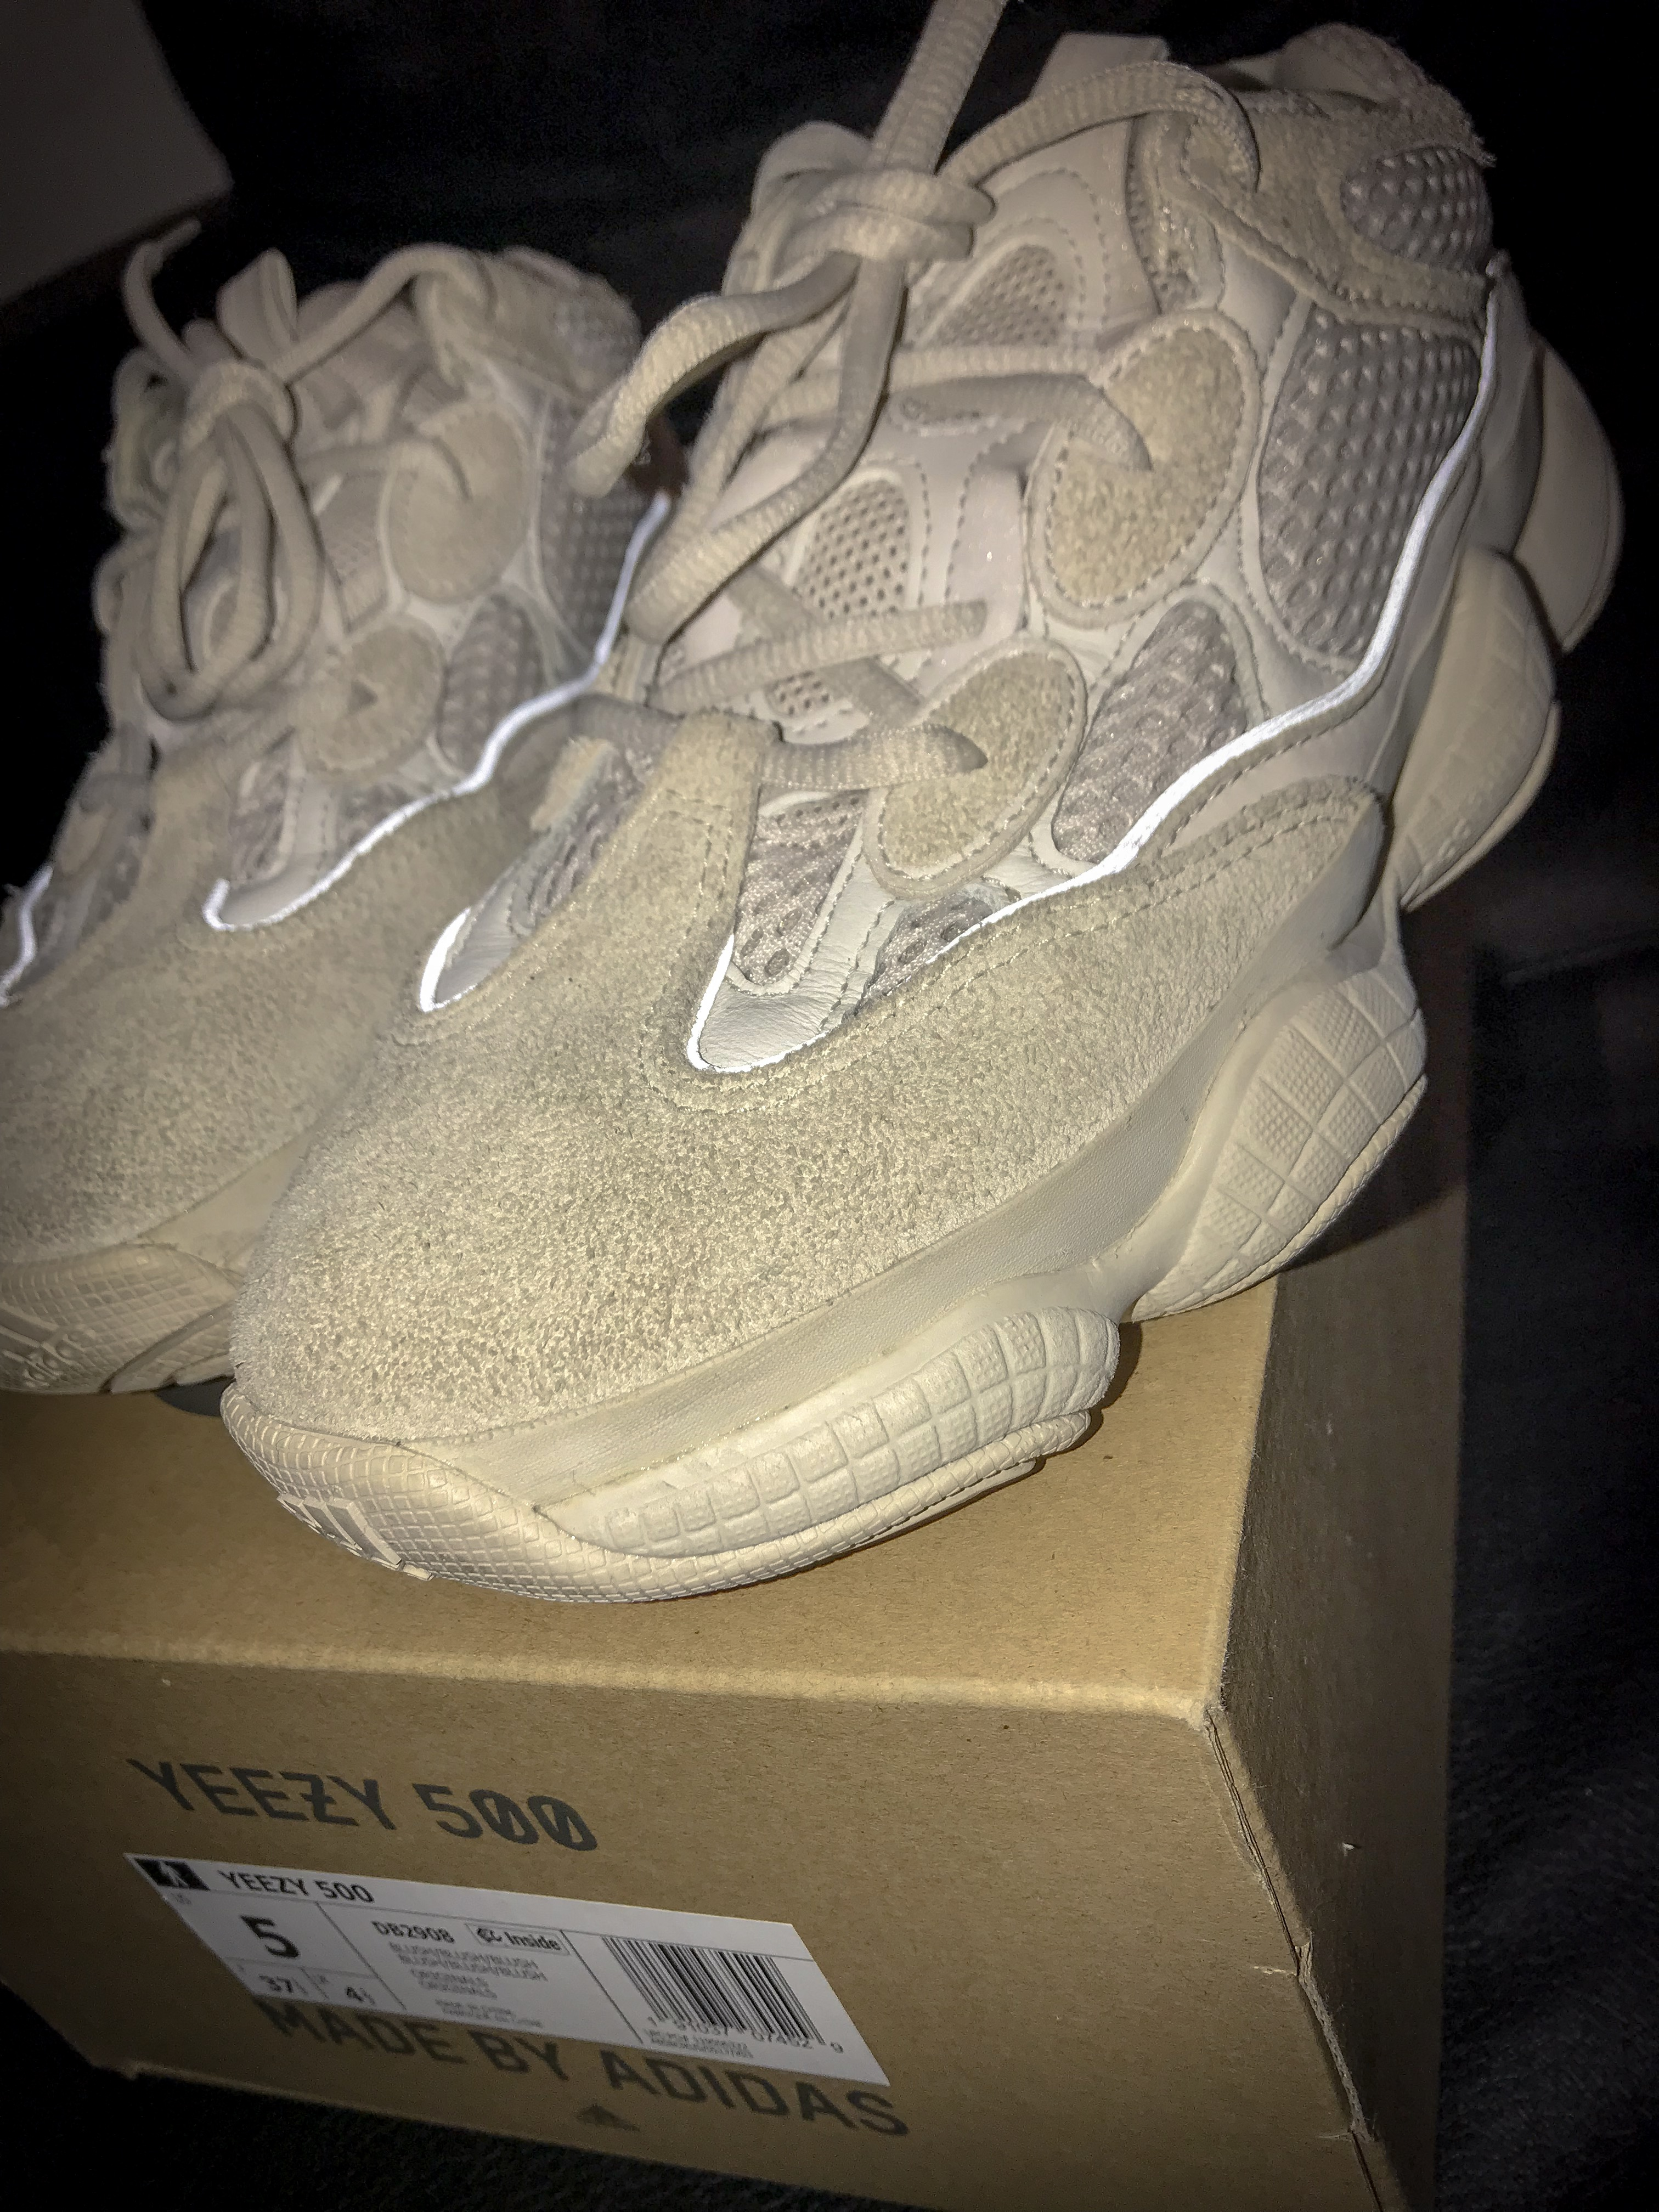 competitive price 417de f9753 Yeezy x Kanye West x Adidas Blush 500s